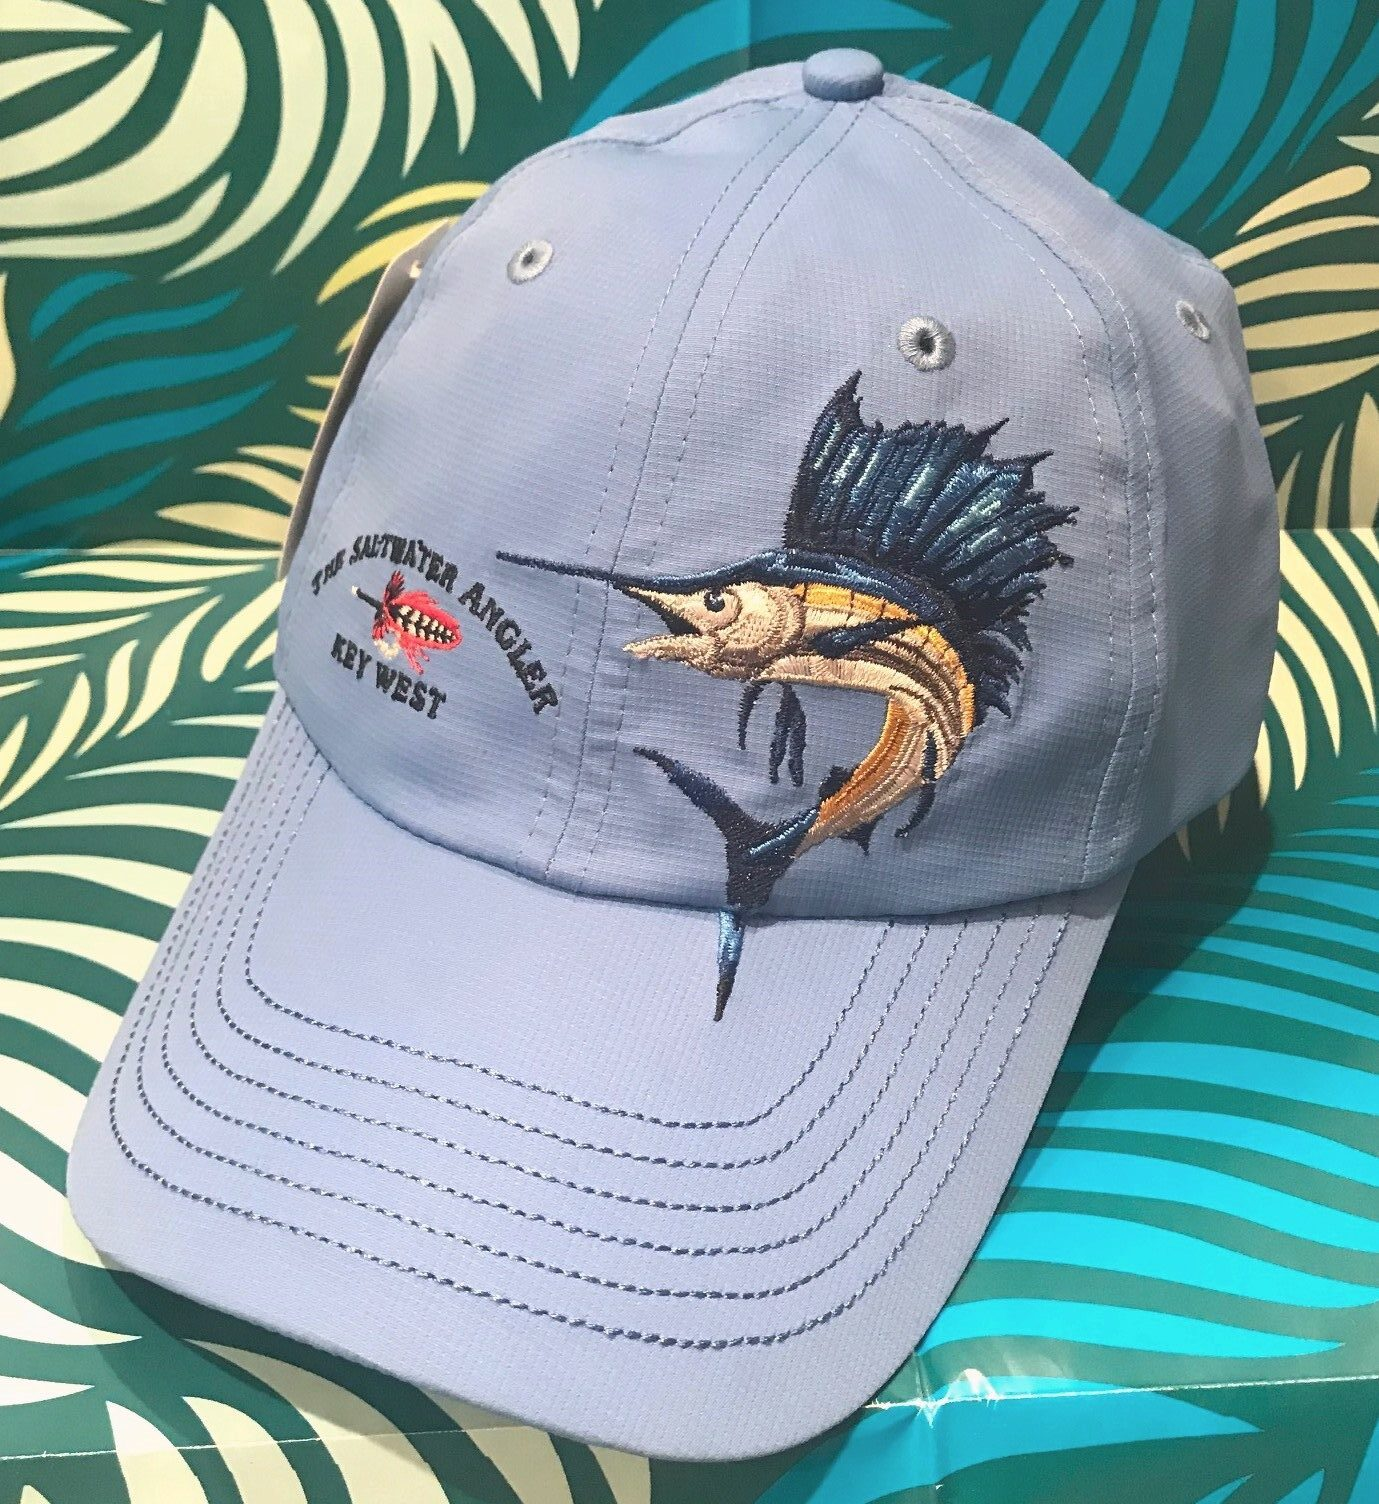 Saltwater Angler Sailfish Performance Cap